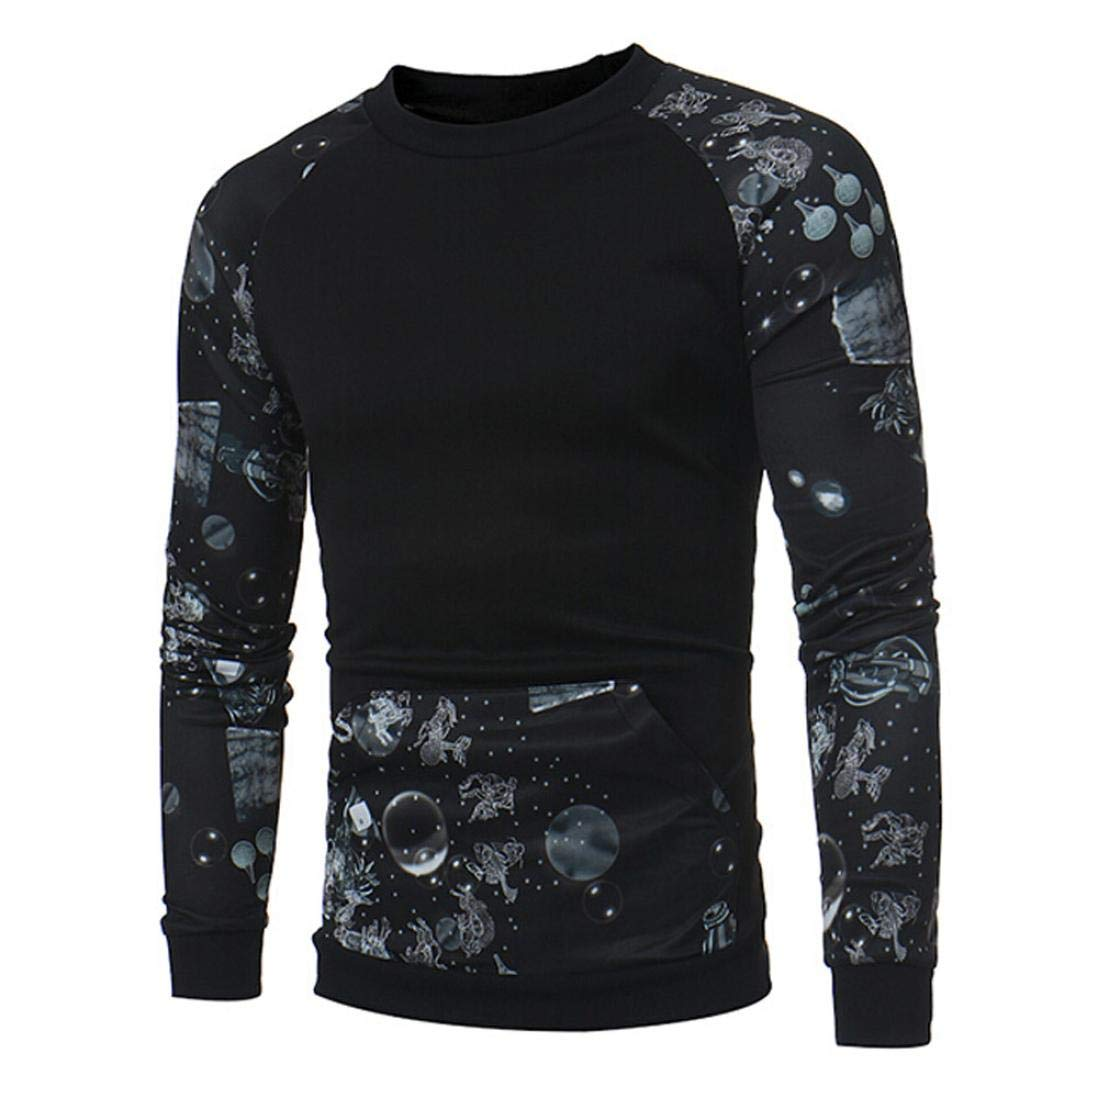 vermers Clearance Men's Fashion Stitching Printed Long Sleeve T Shirt - Mens Casual O-Neck Pocket Top Blouse(XL, Black)